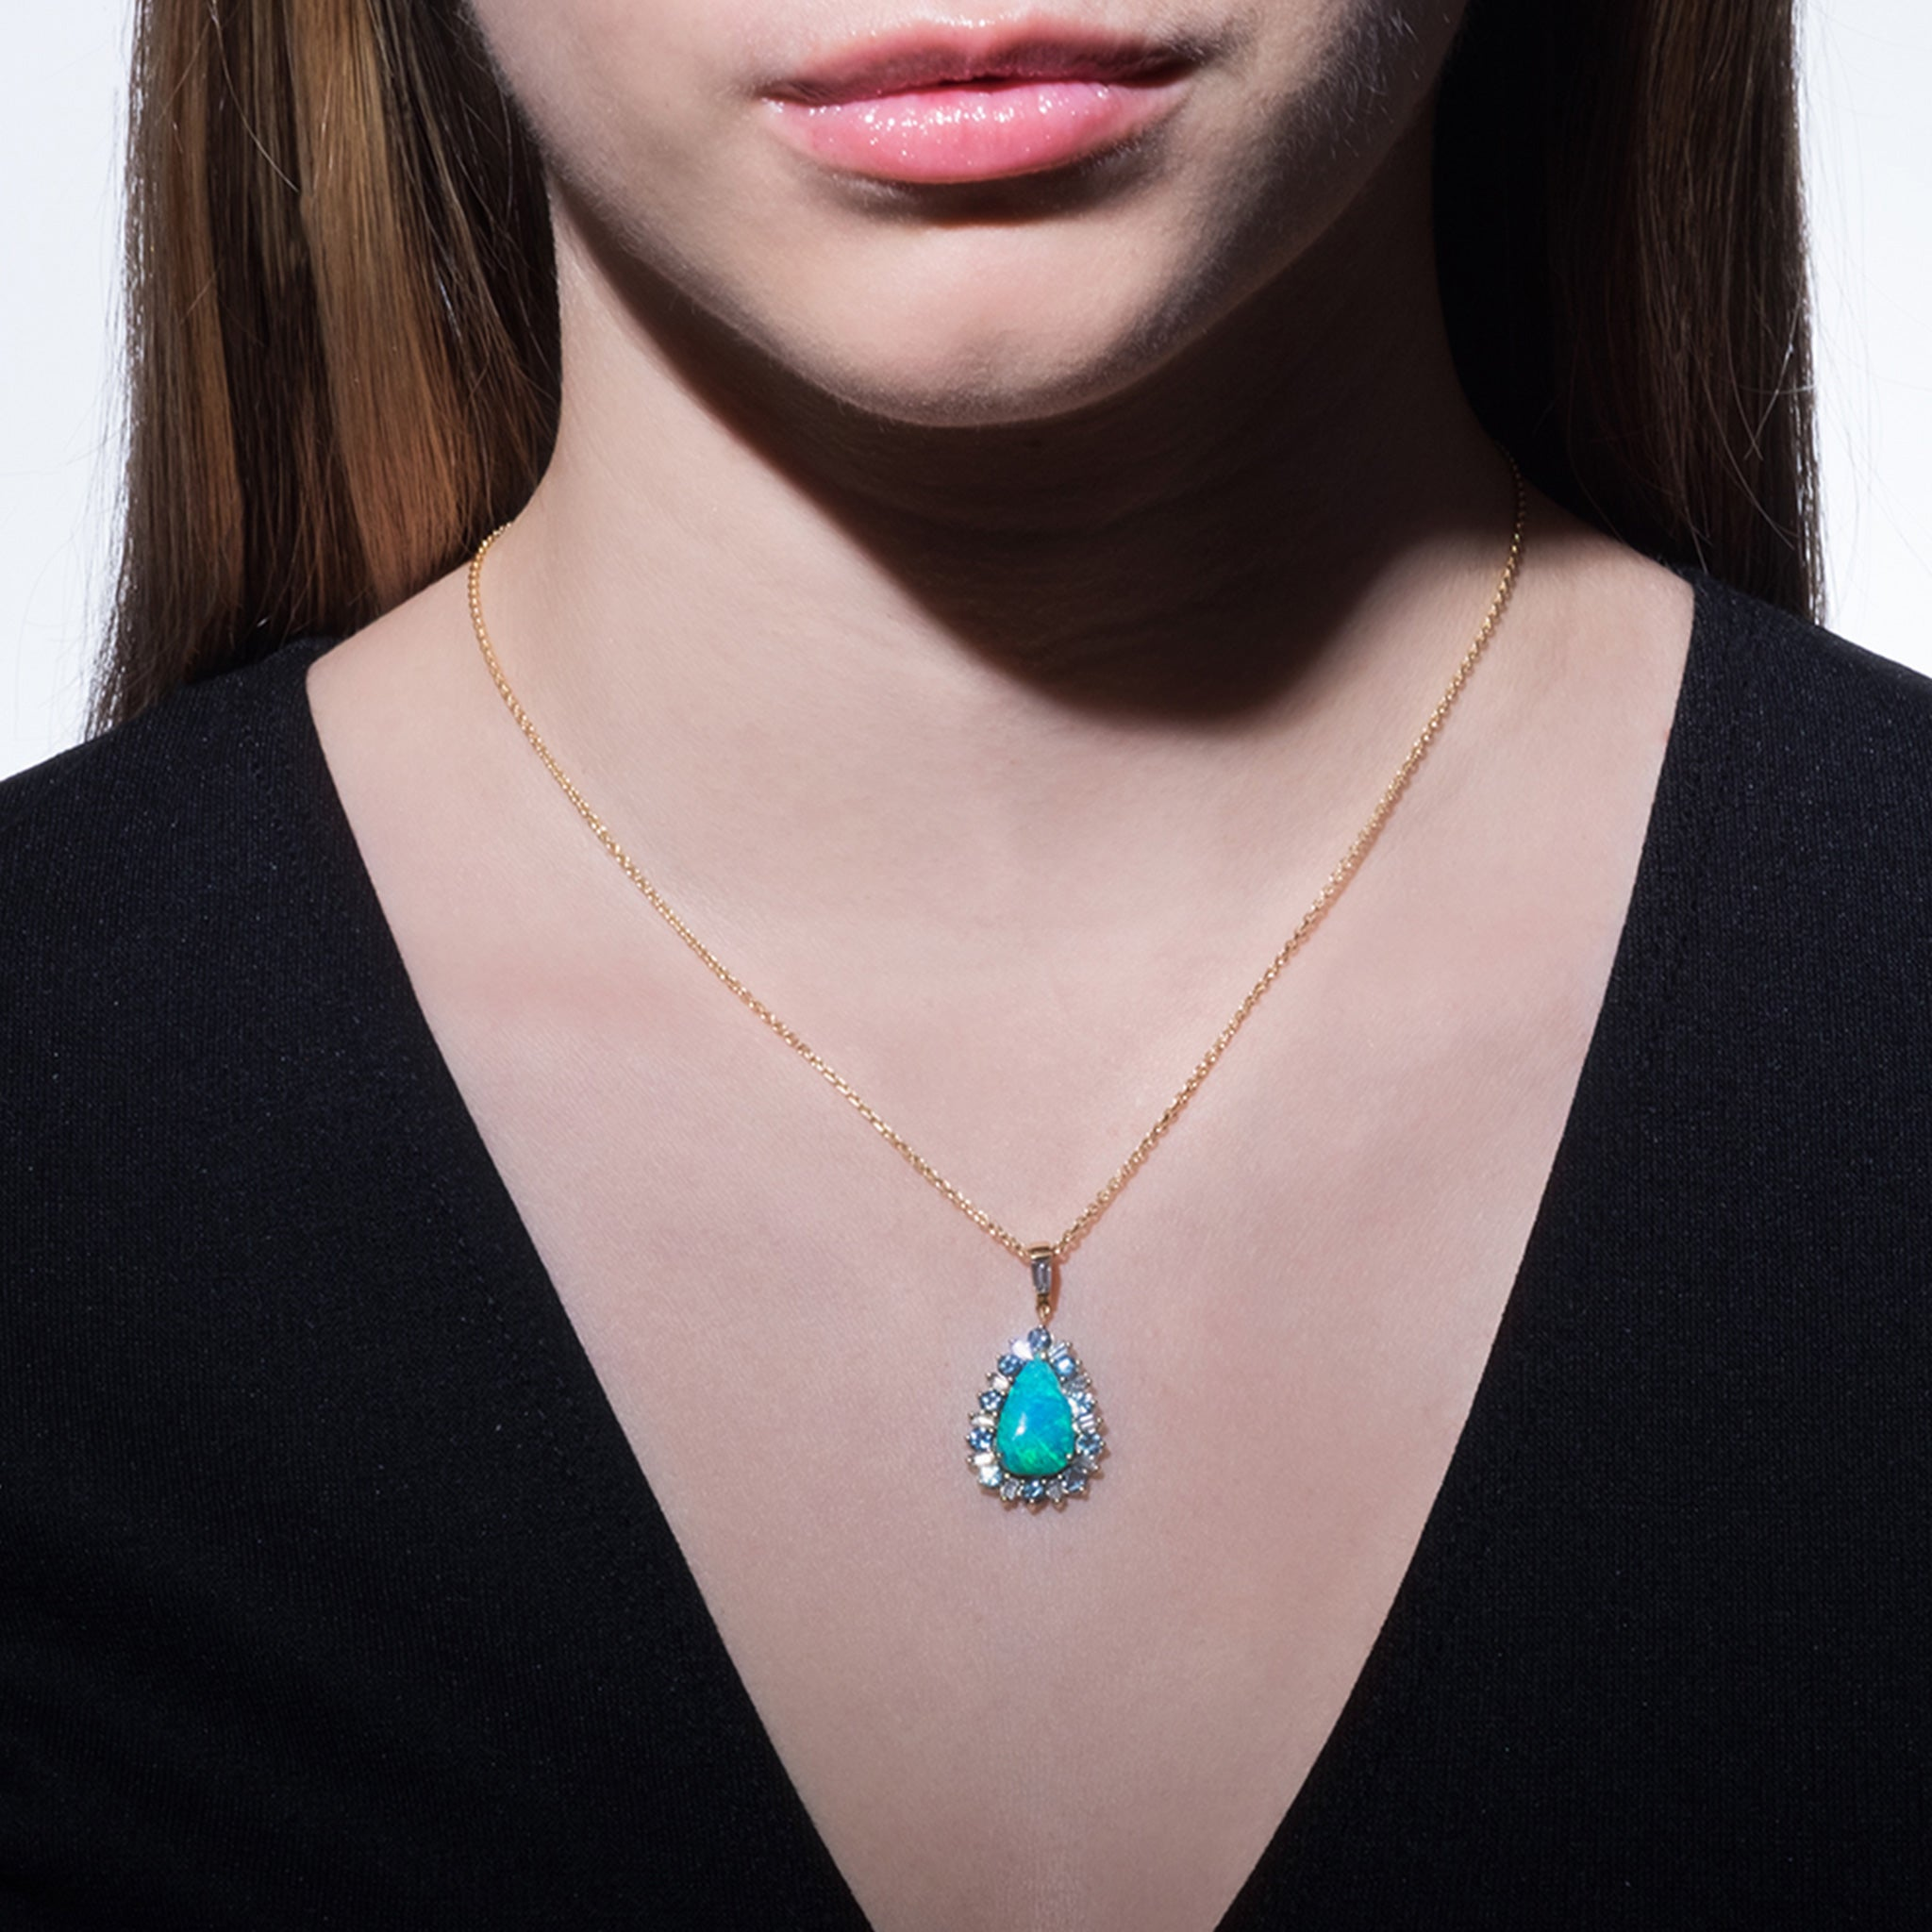 Mimi So Multi-Gemstone Boulder Opal Pendant Necklace